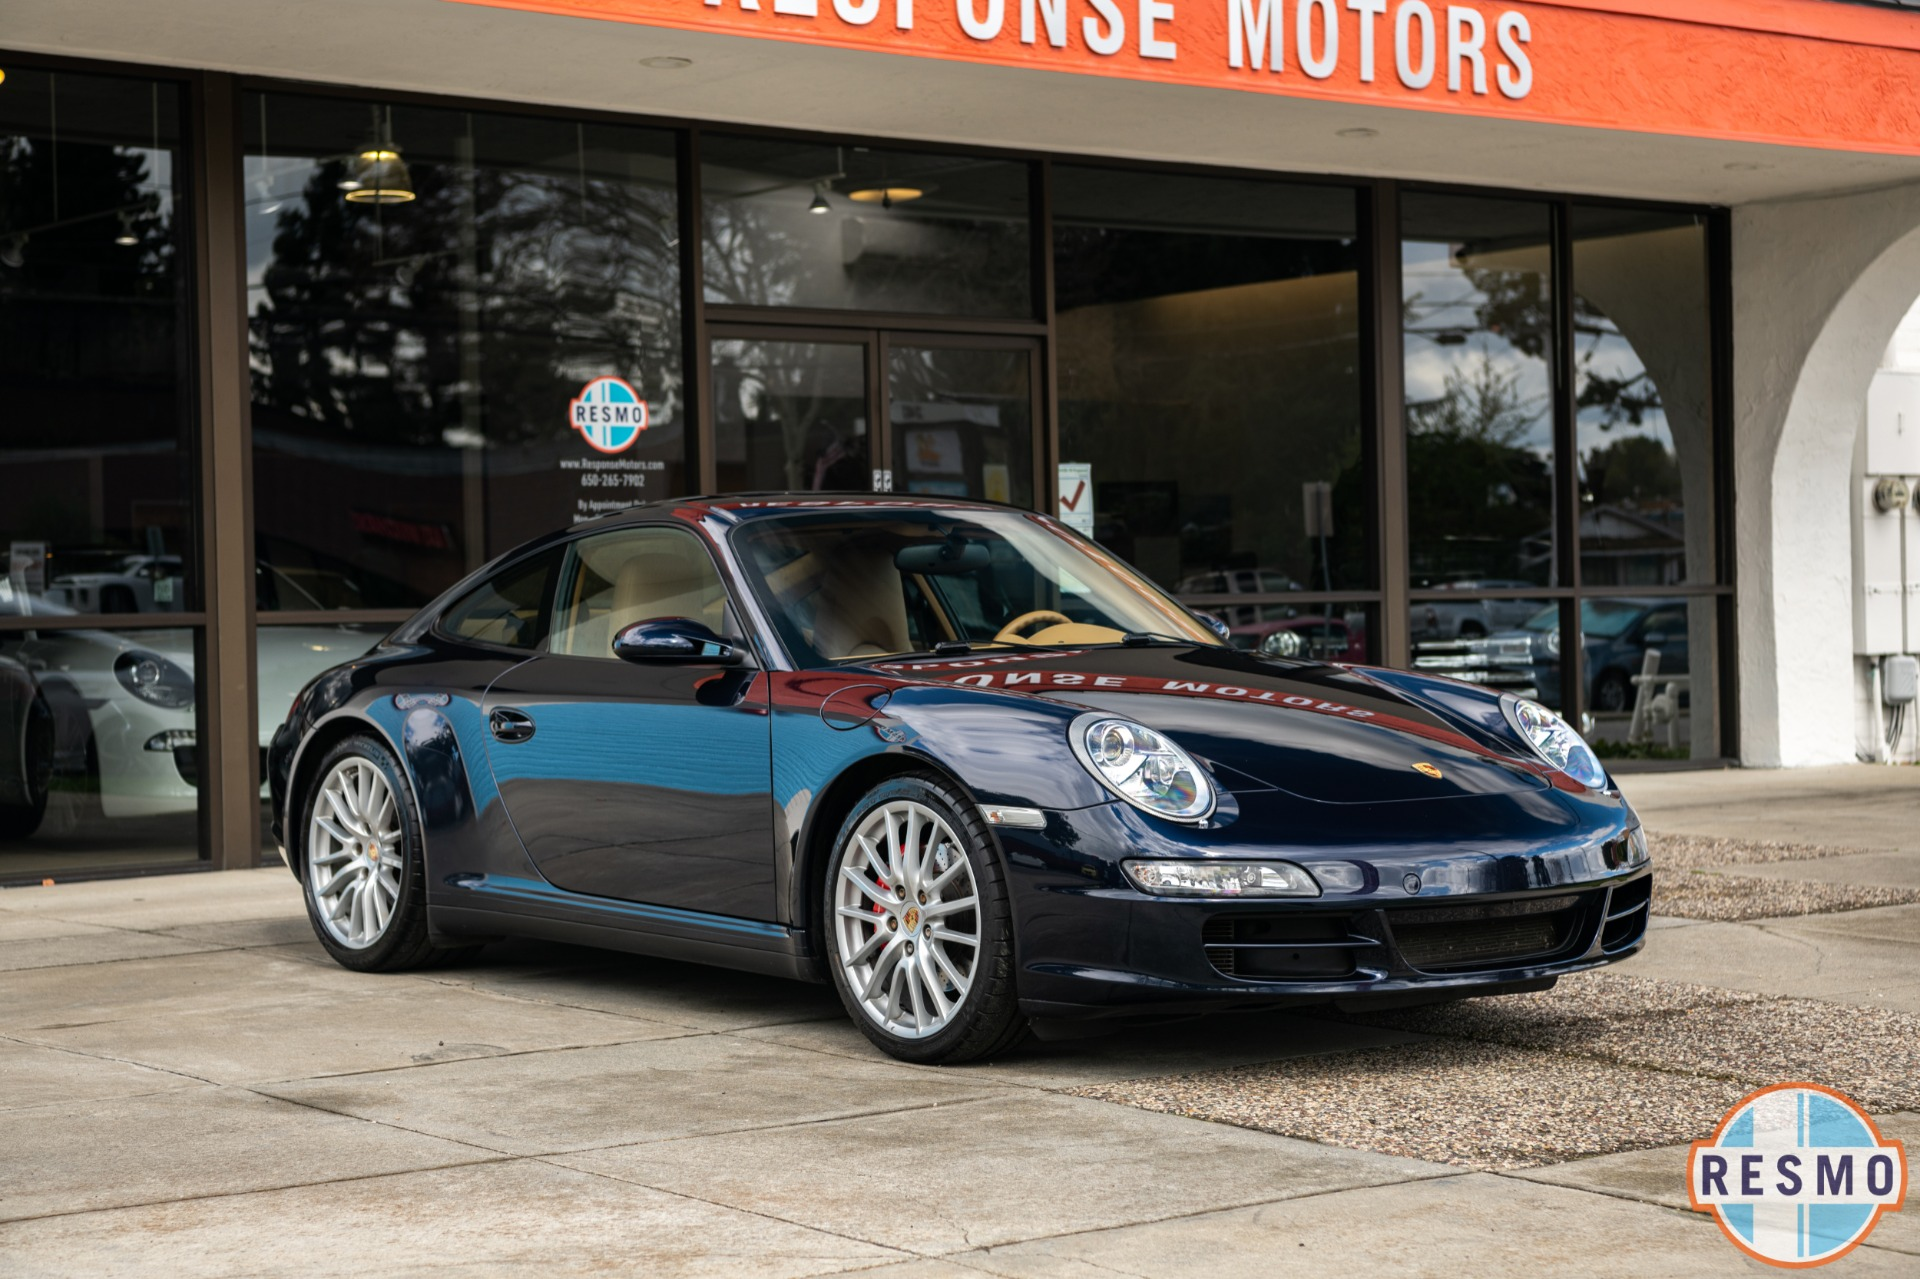 Used 2008 Porsche 911 Carrera 4S Used 2008 Porsche 911 Carrera 4S for sale $41,999 at Response Motors in Mountain View CA 1